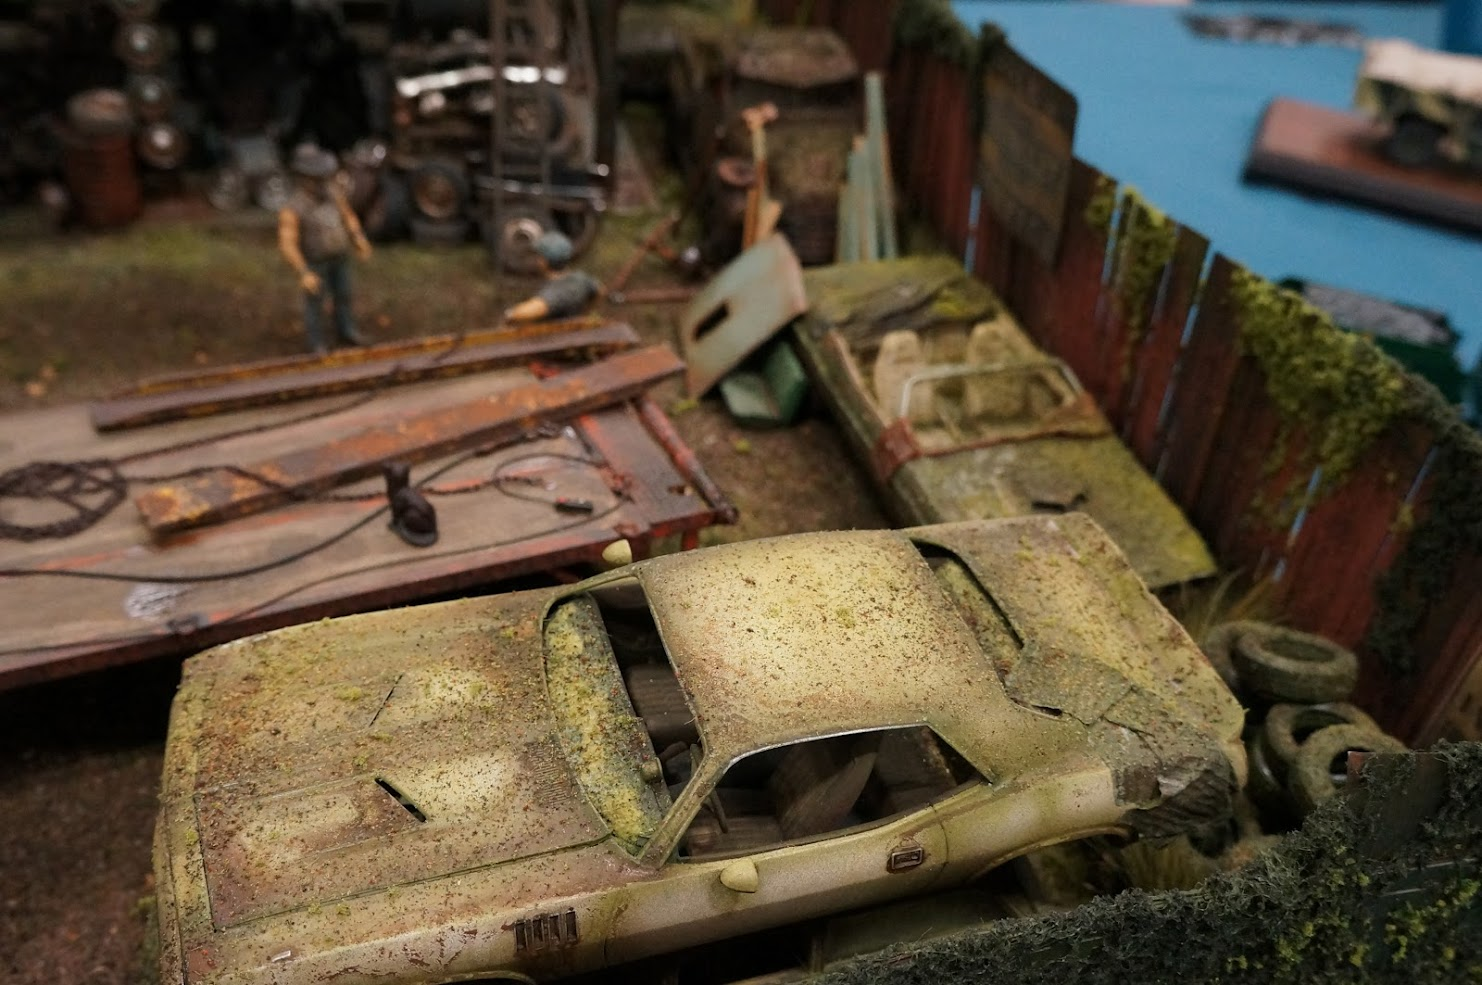 1 24 1 25 Barn Garage Diorama For Sale On Ebay: 1000+ Images About Model Car Dioramas On Pinterest